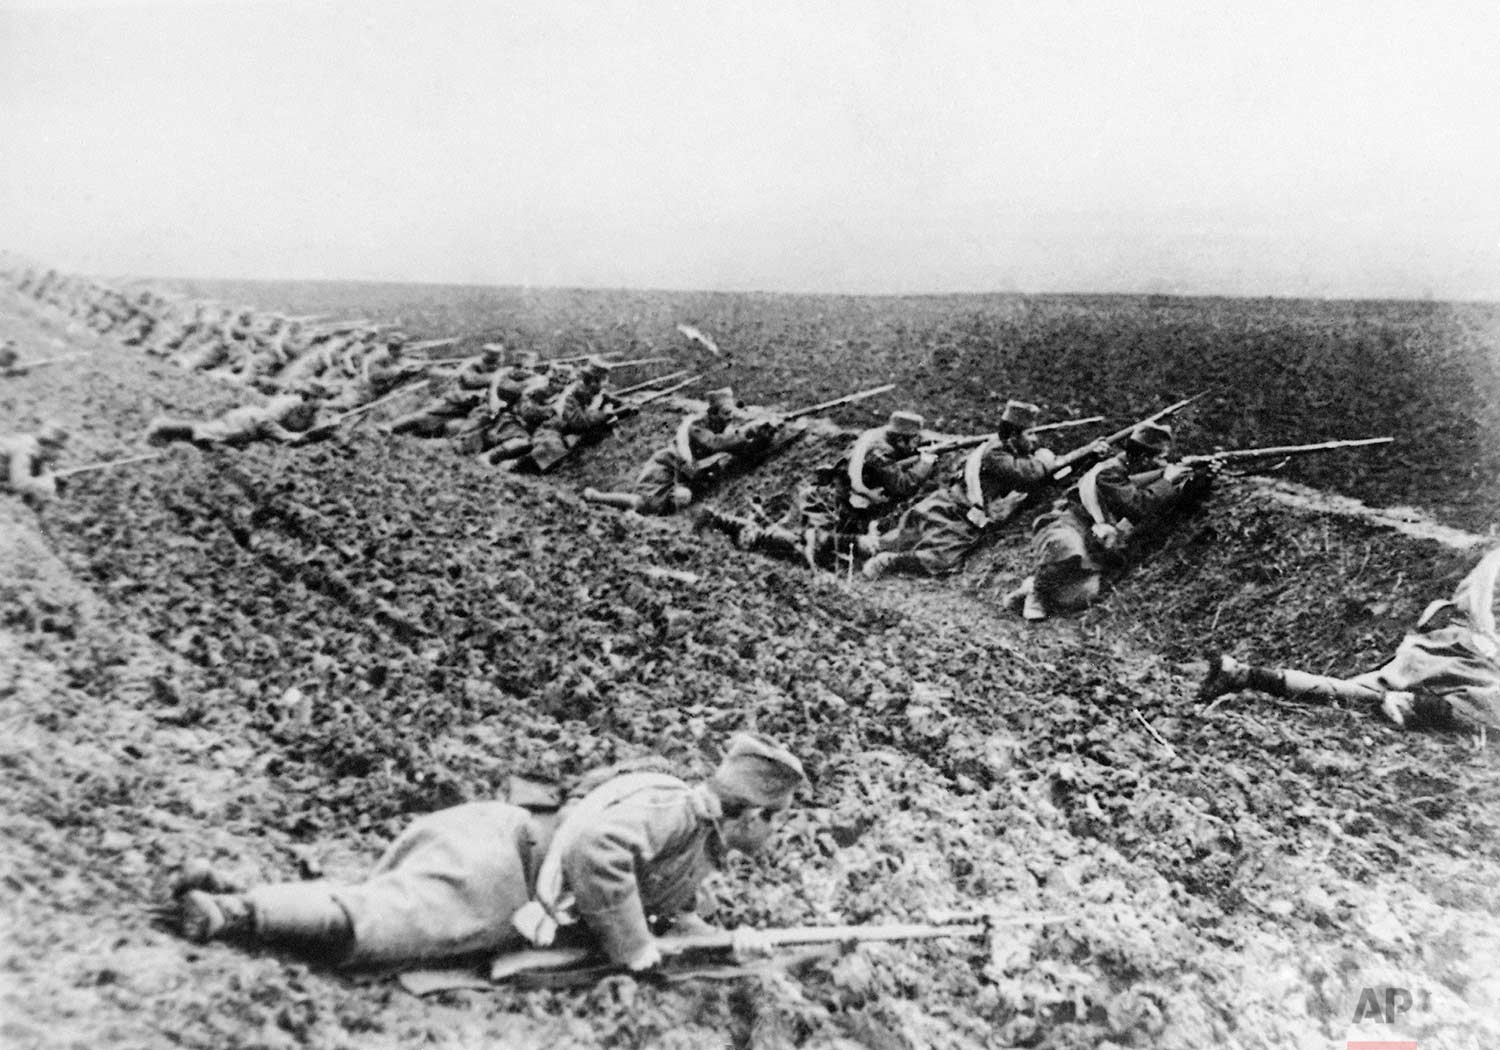 In this undated photo, Serbian soldiers take position on the battle line. Some of the first battles of World War One were fought between Serbia and Austria-Hungary around the Cer Mountain region. (AP Photo)